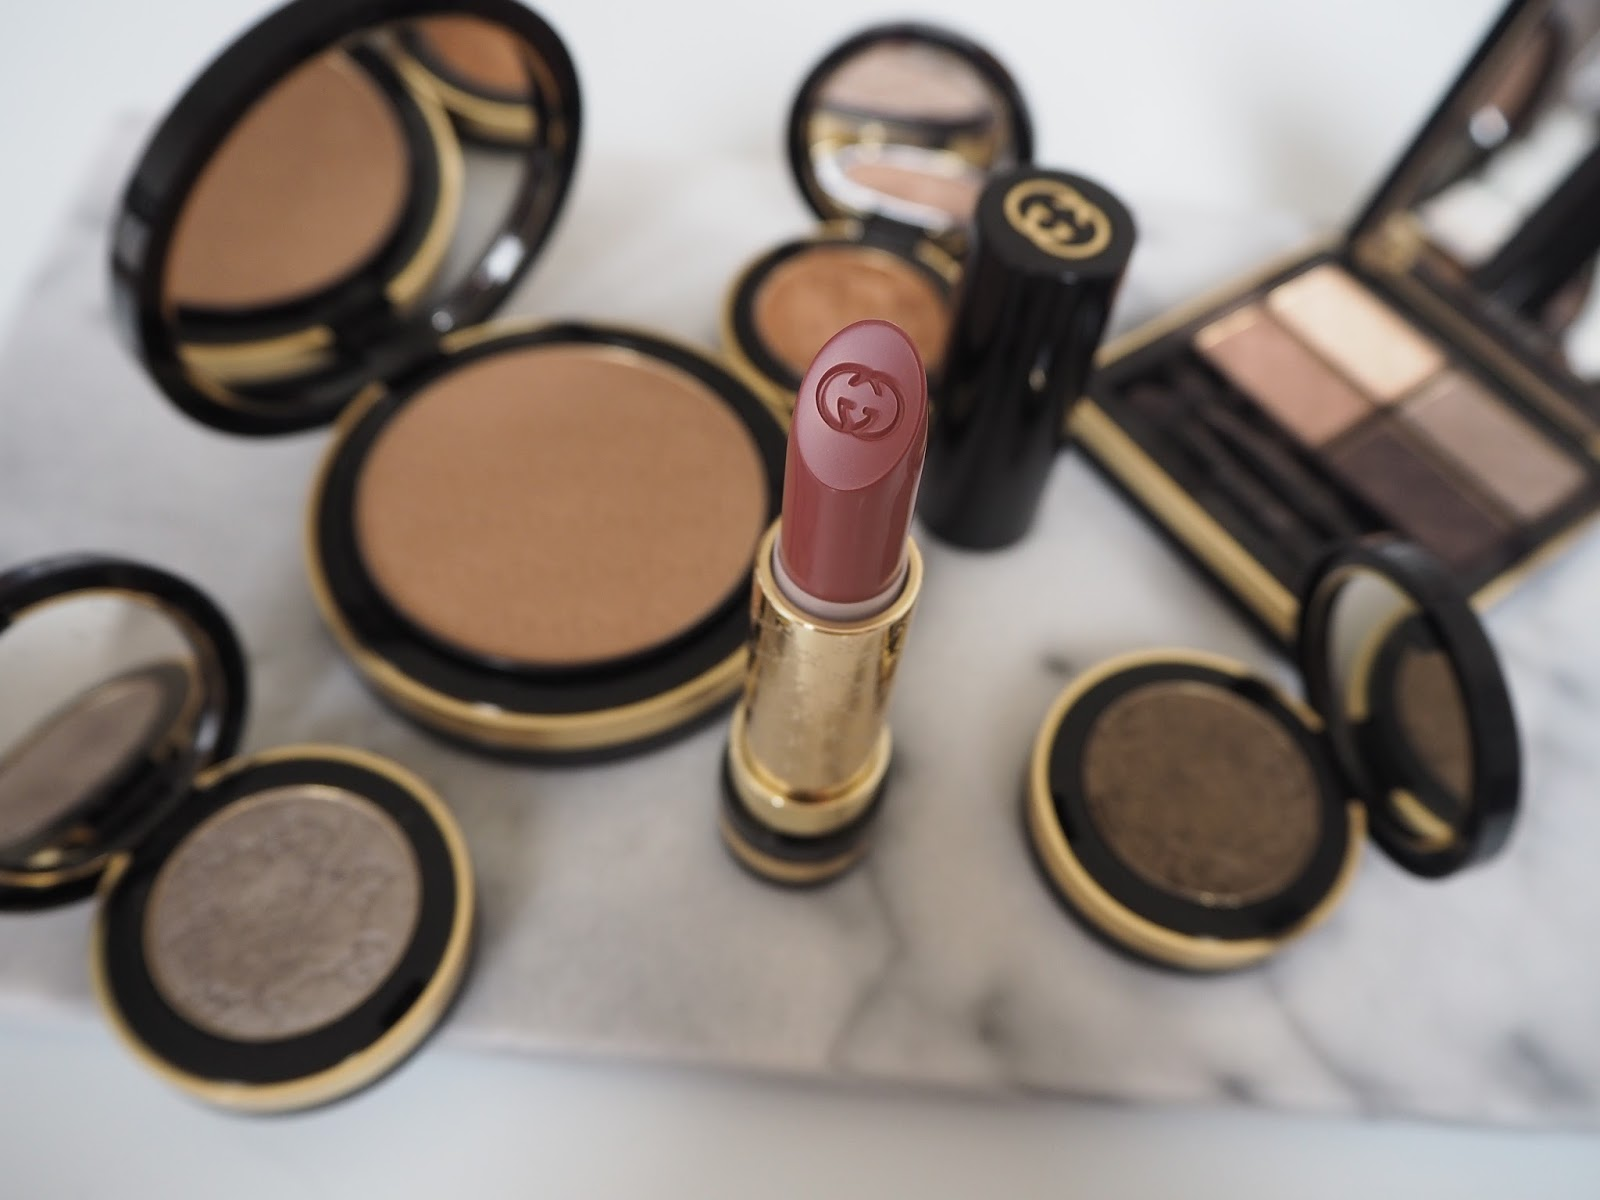 The review: Gucci Luxurious Lipstick in 340 Nude Satin